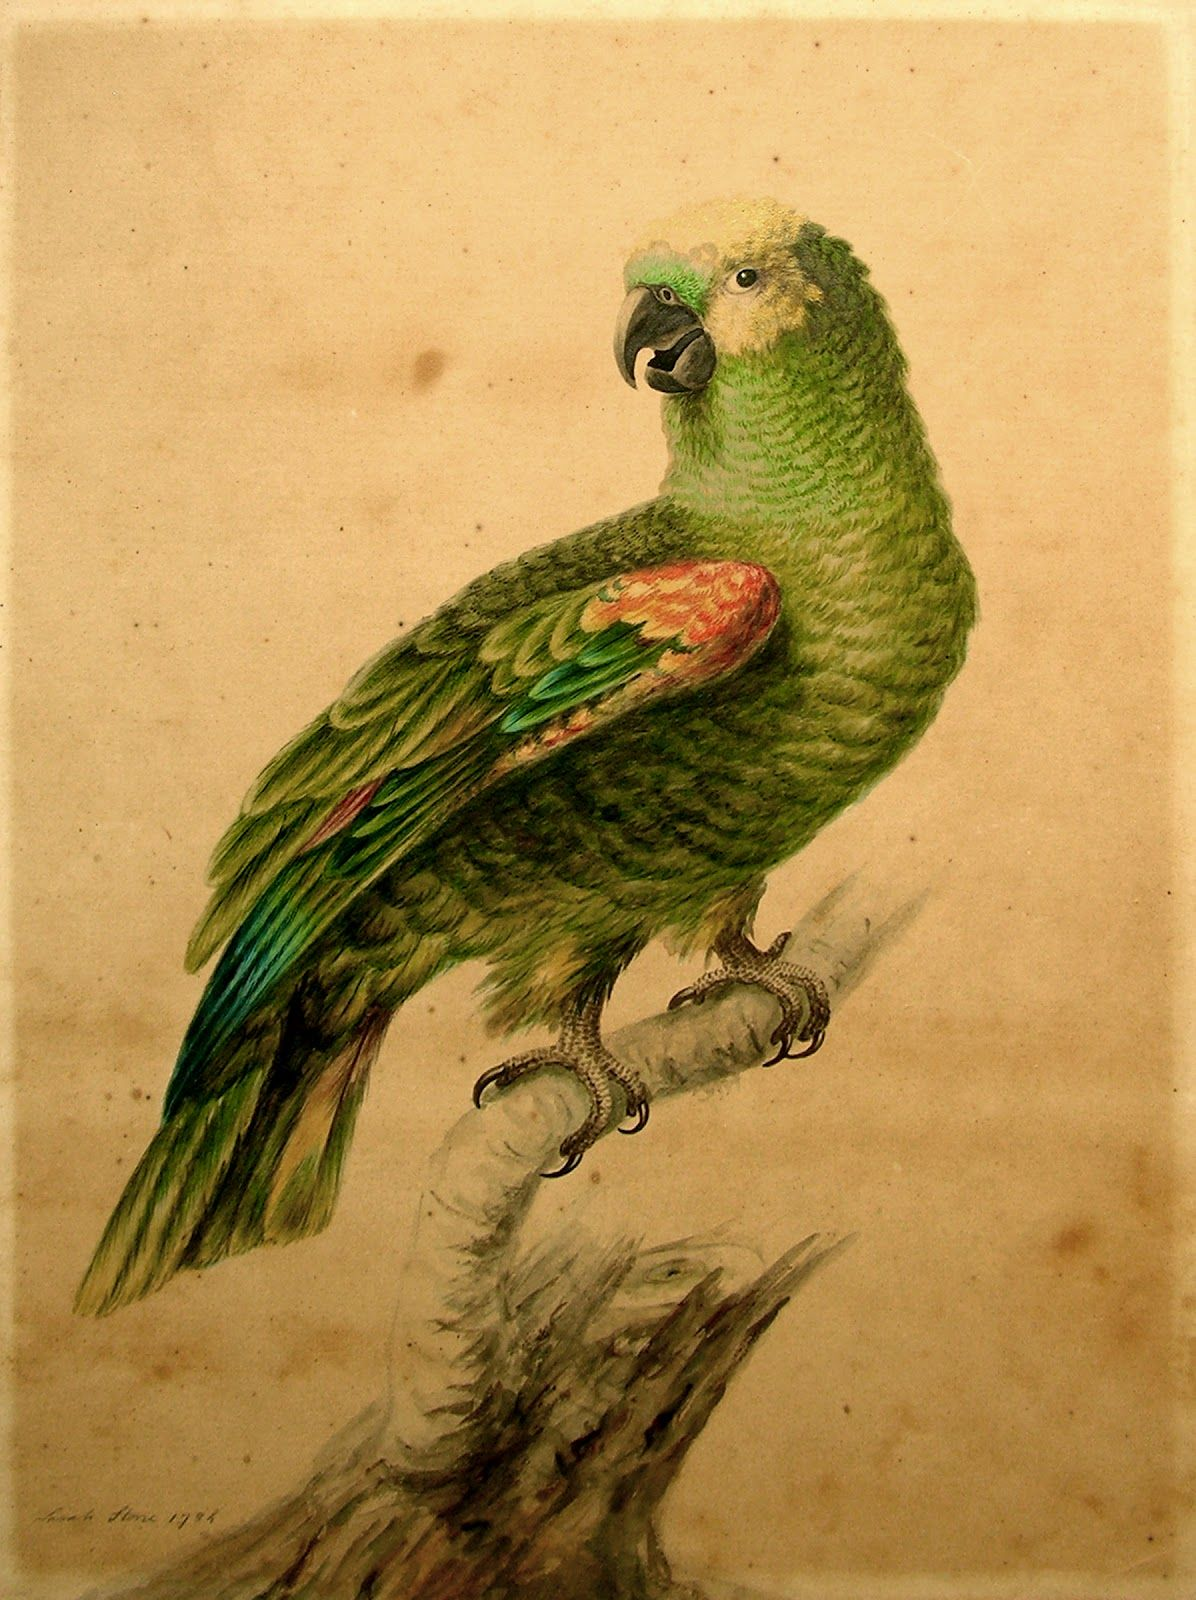 Green parrot. The Finest Watercolor of a Parrot Signed and dated by Sarah Stone, the 18th century natural history artist comissioned to paint the contents of Sir Ashton Lever's museum in London.